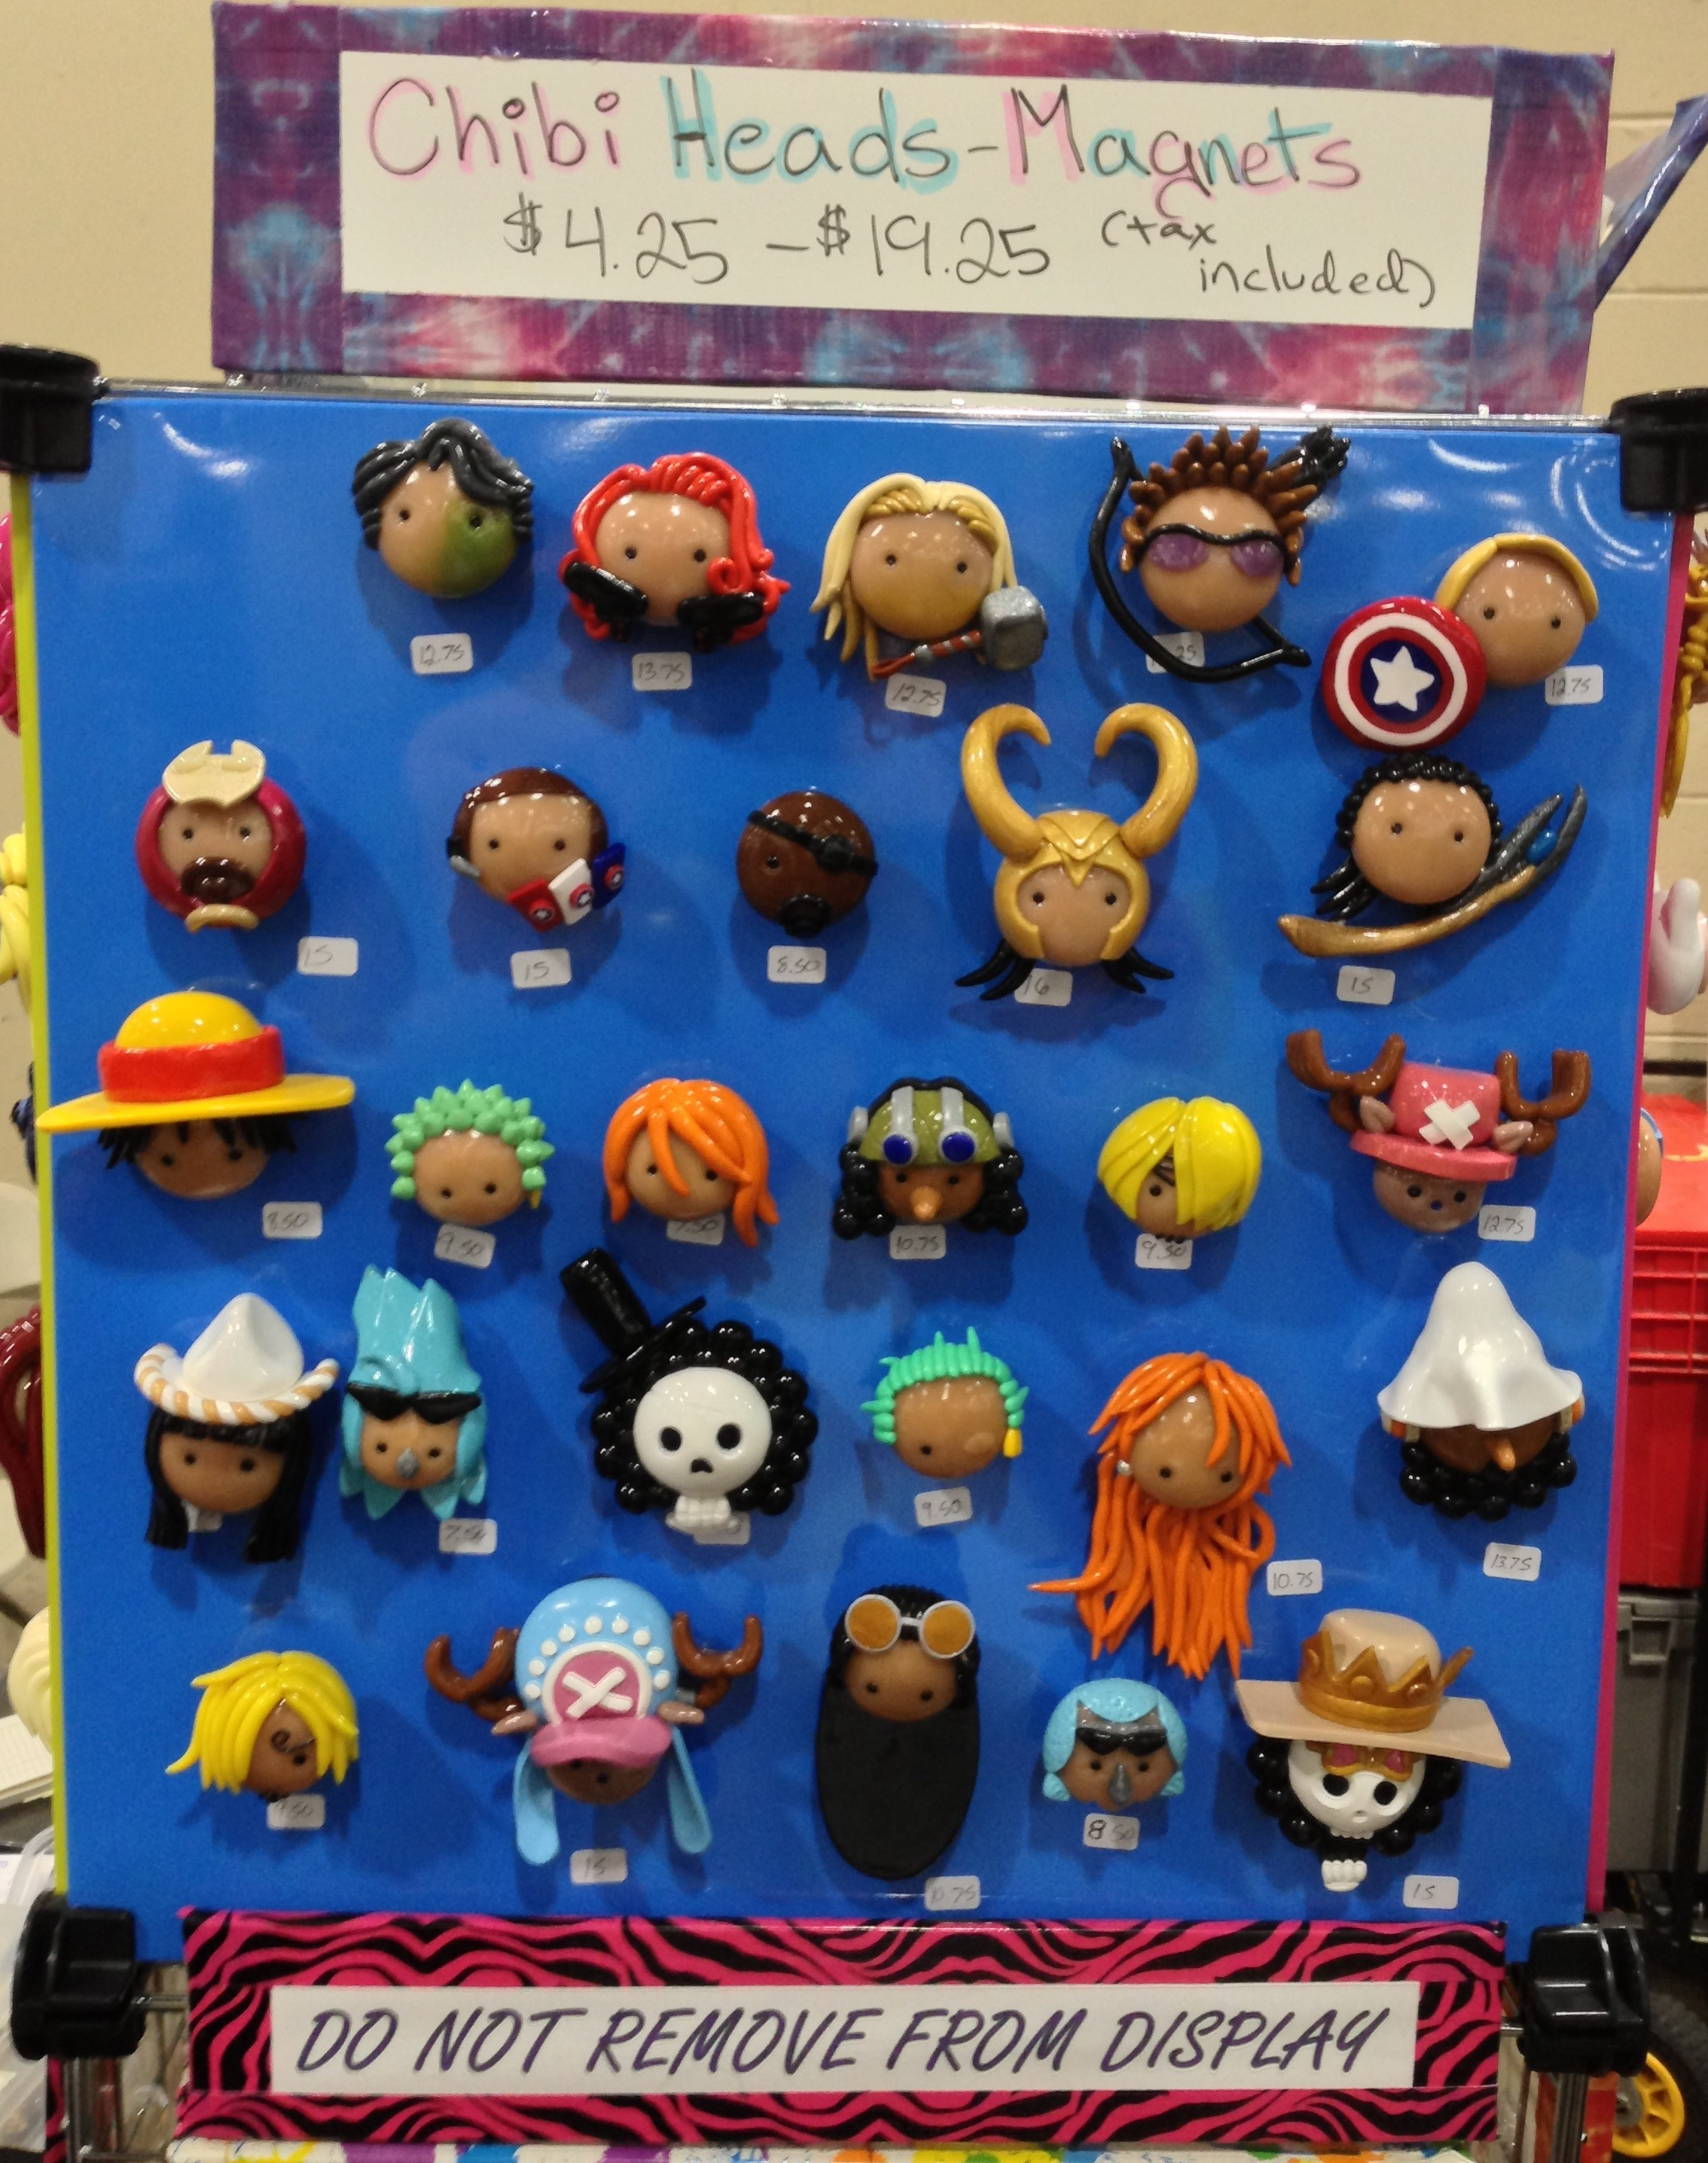 Anime Boston 2013 Custom One Piece Magnets Chibi Heads